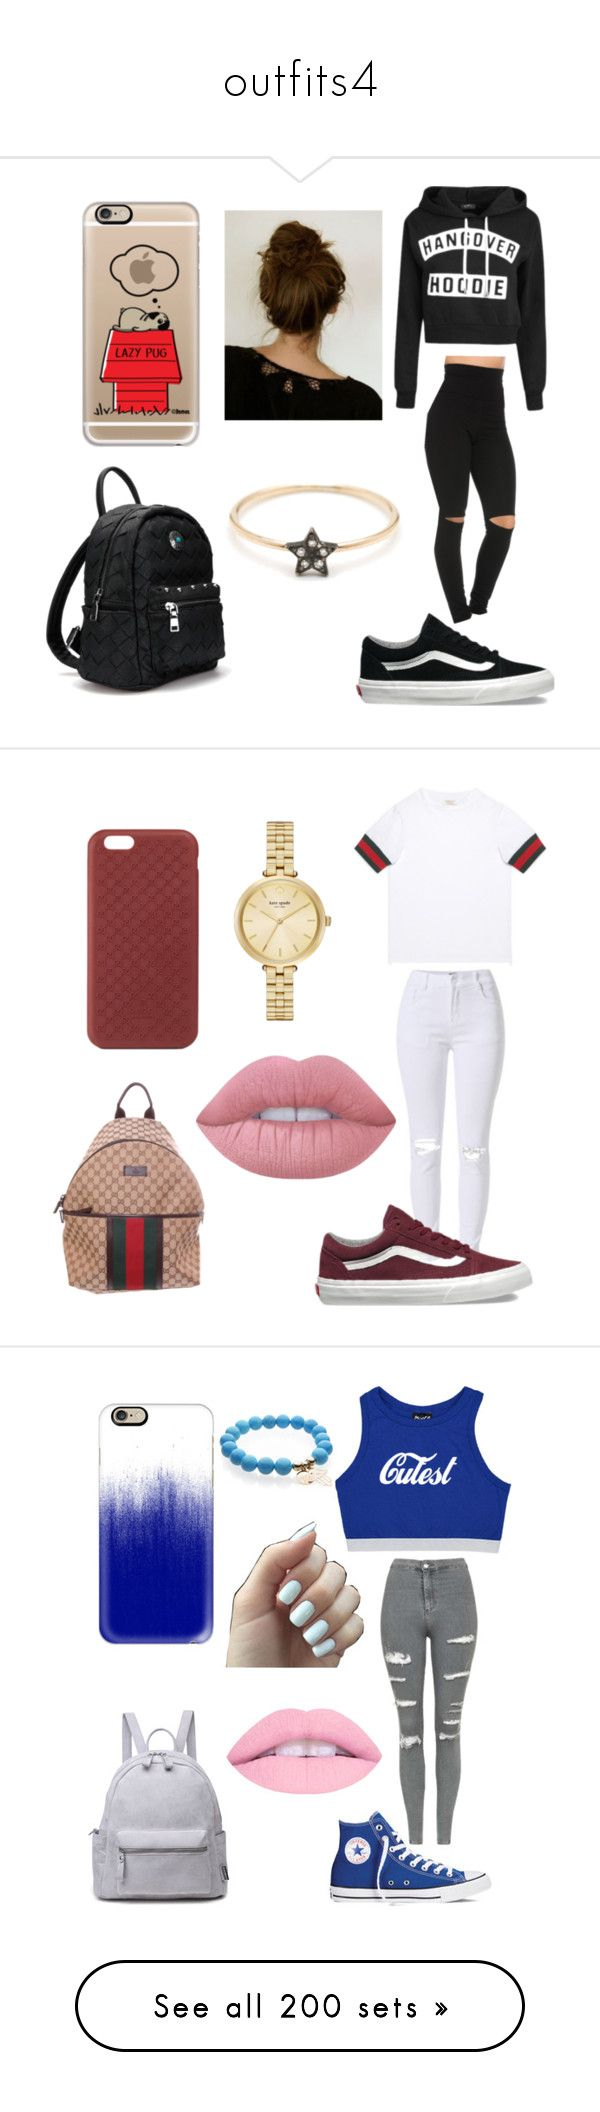 """""""outfits4"""" by jeni-tomaskova ❤ liked on Polyvore featuring Vans, Casetify, Gucci, Kate Spade, Lime Crime, Topshop, Converse, Sans Souci, Majestic and Moschino"""